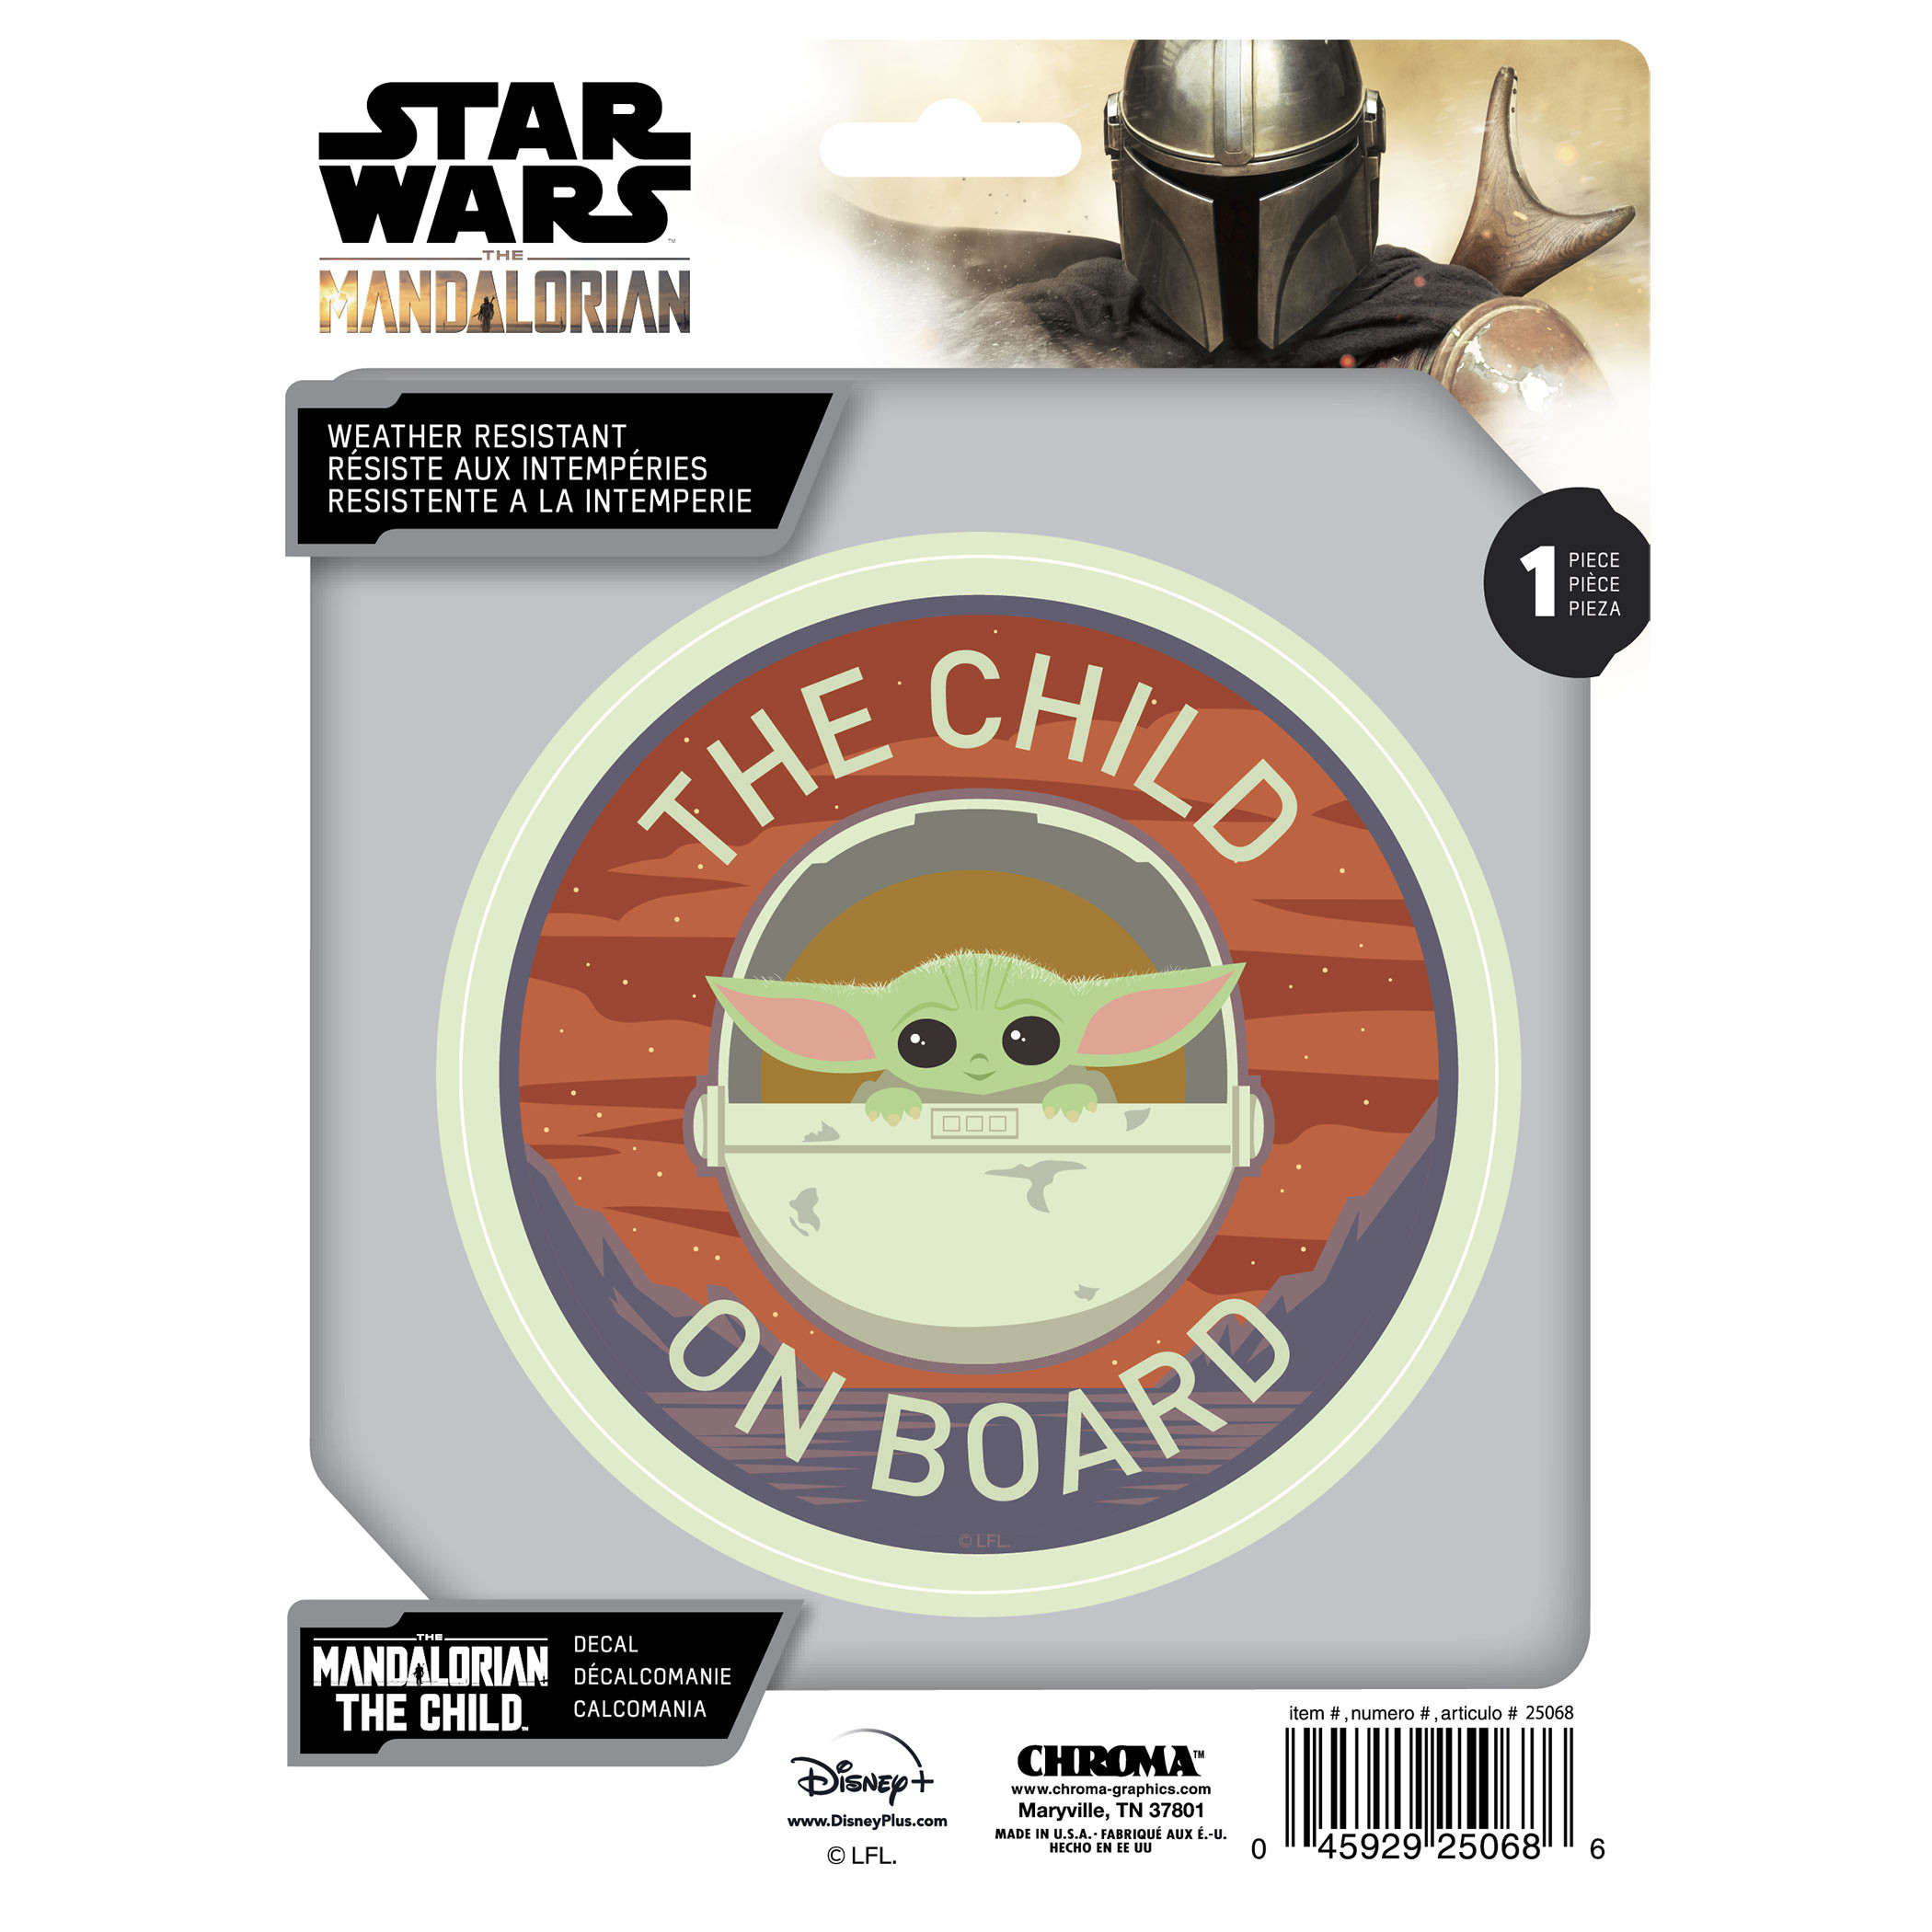 Star Wars The Mandalorian The Child On Board Desert Decal